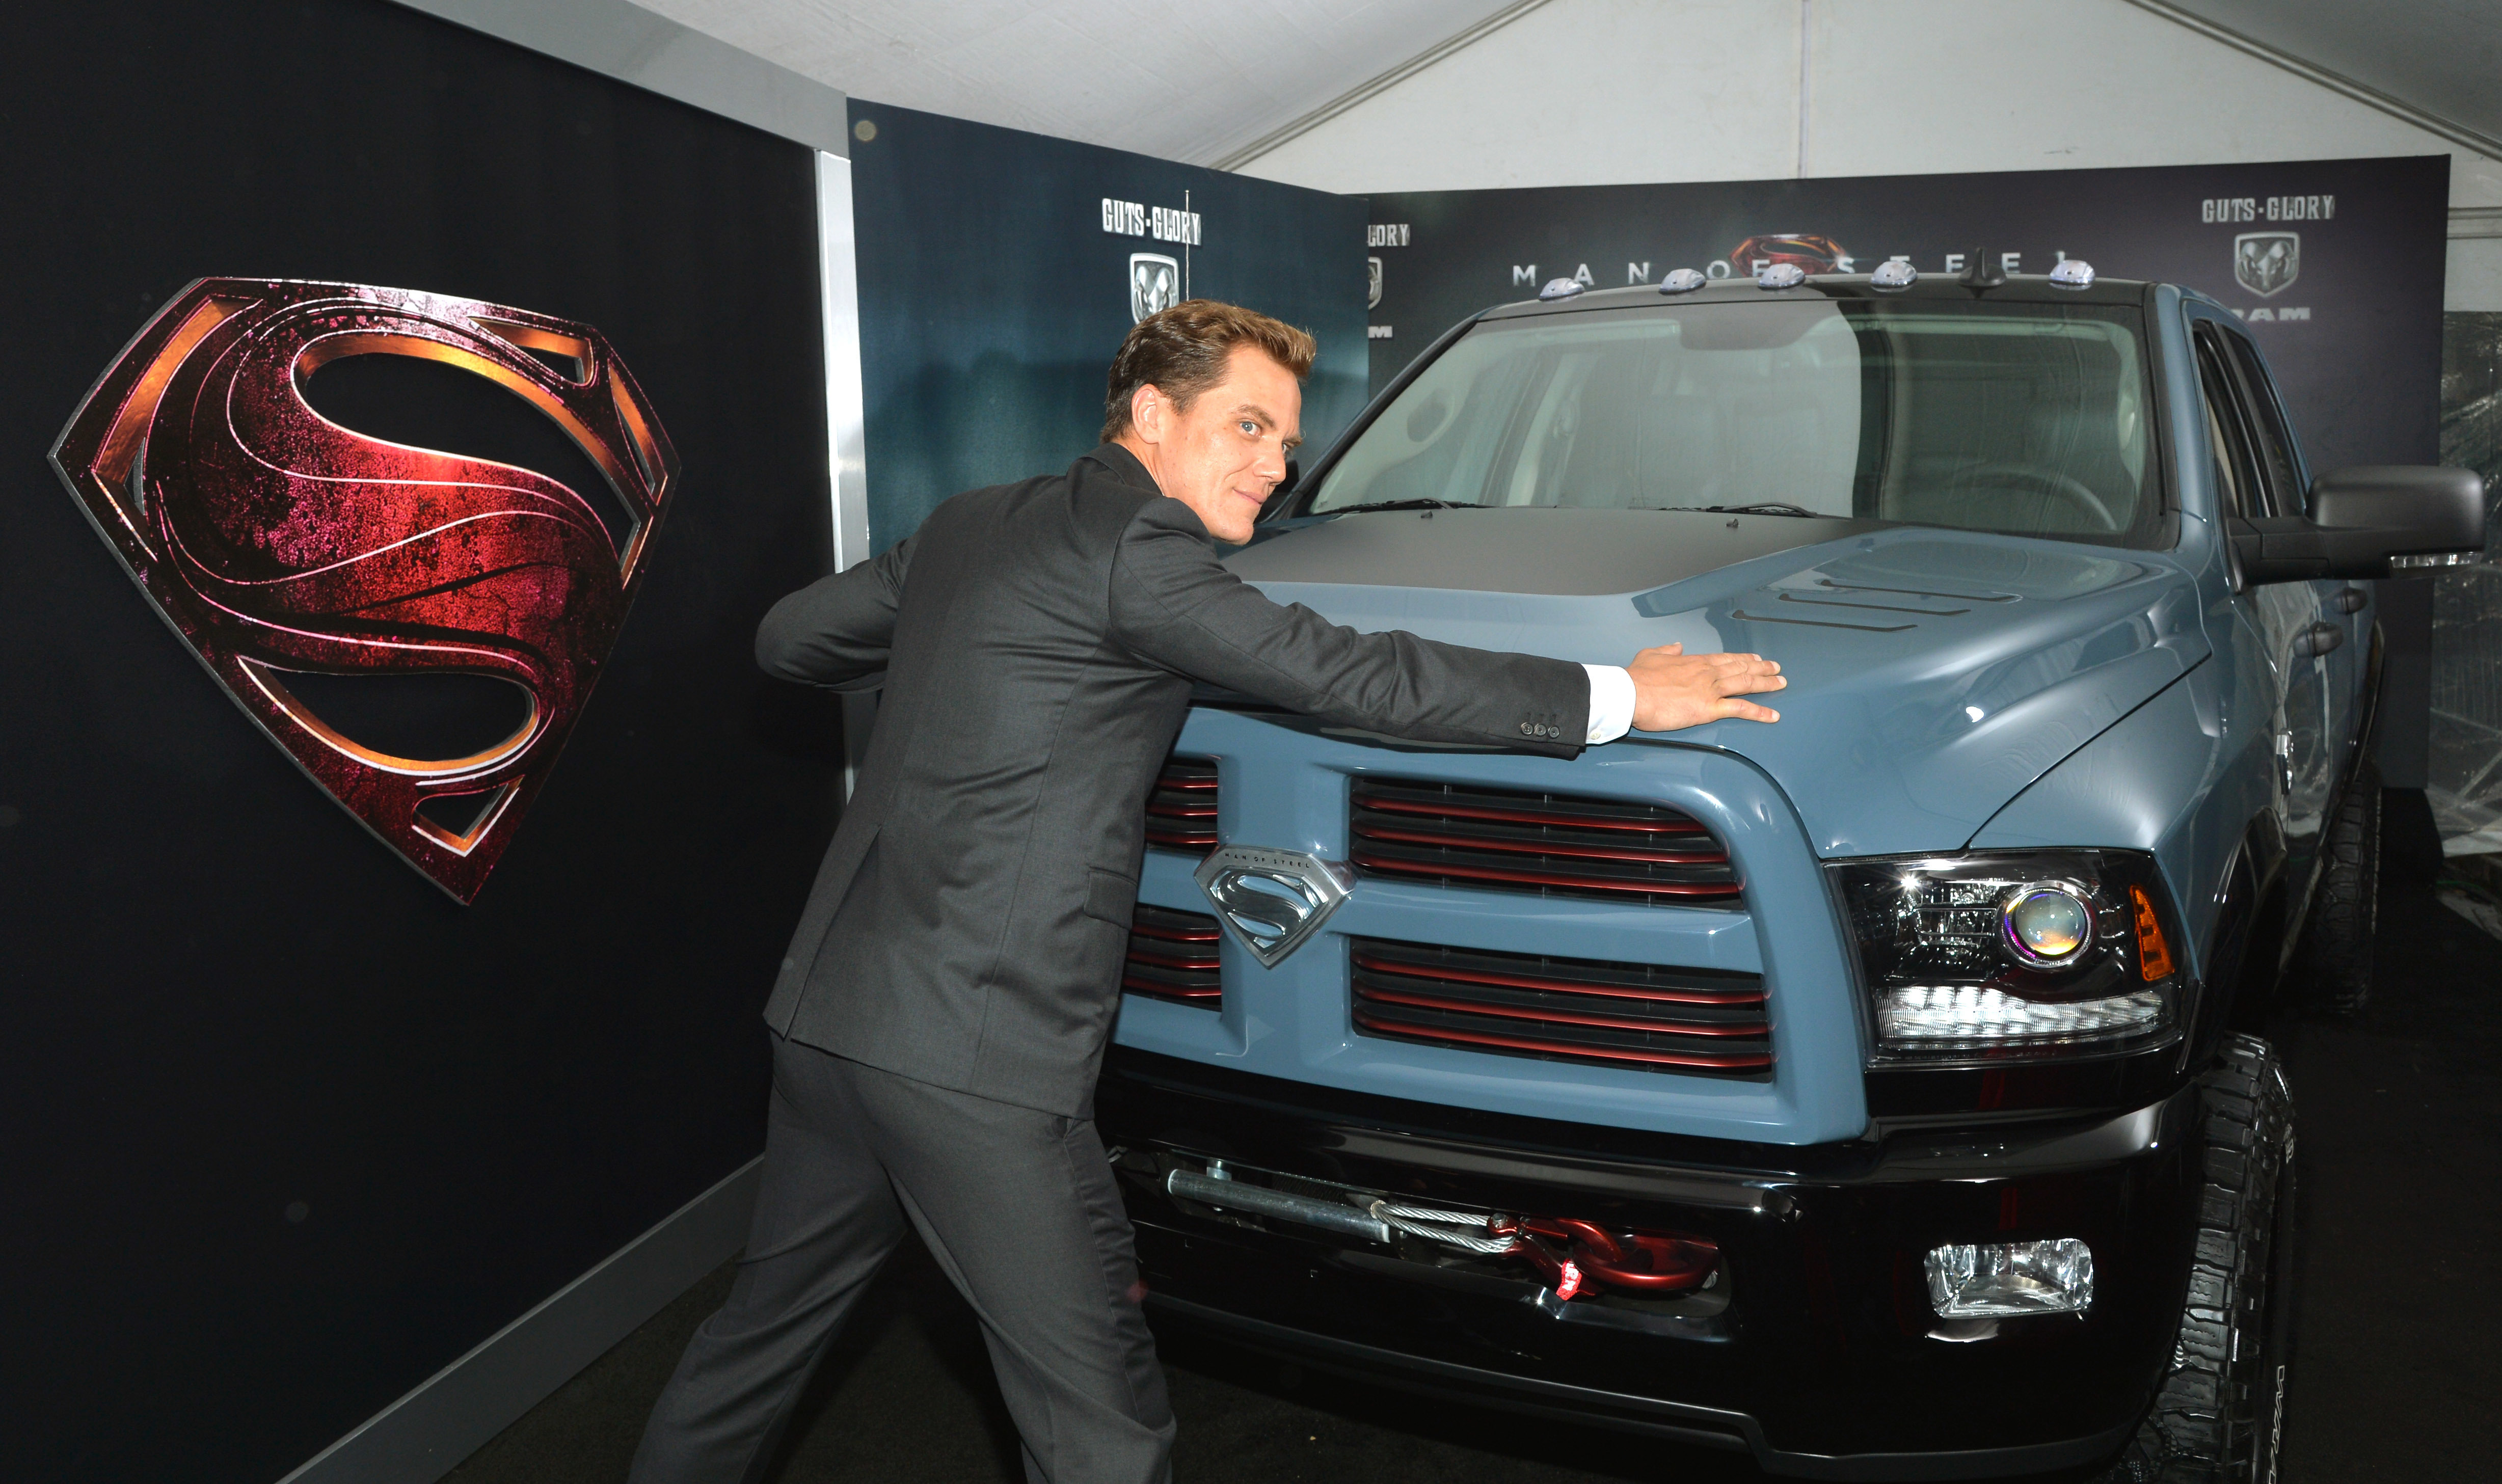 Michael Shannon pretends to stop a car at the 'Man of Steel' premiere.